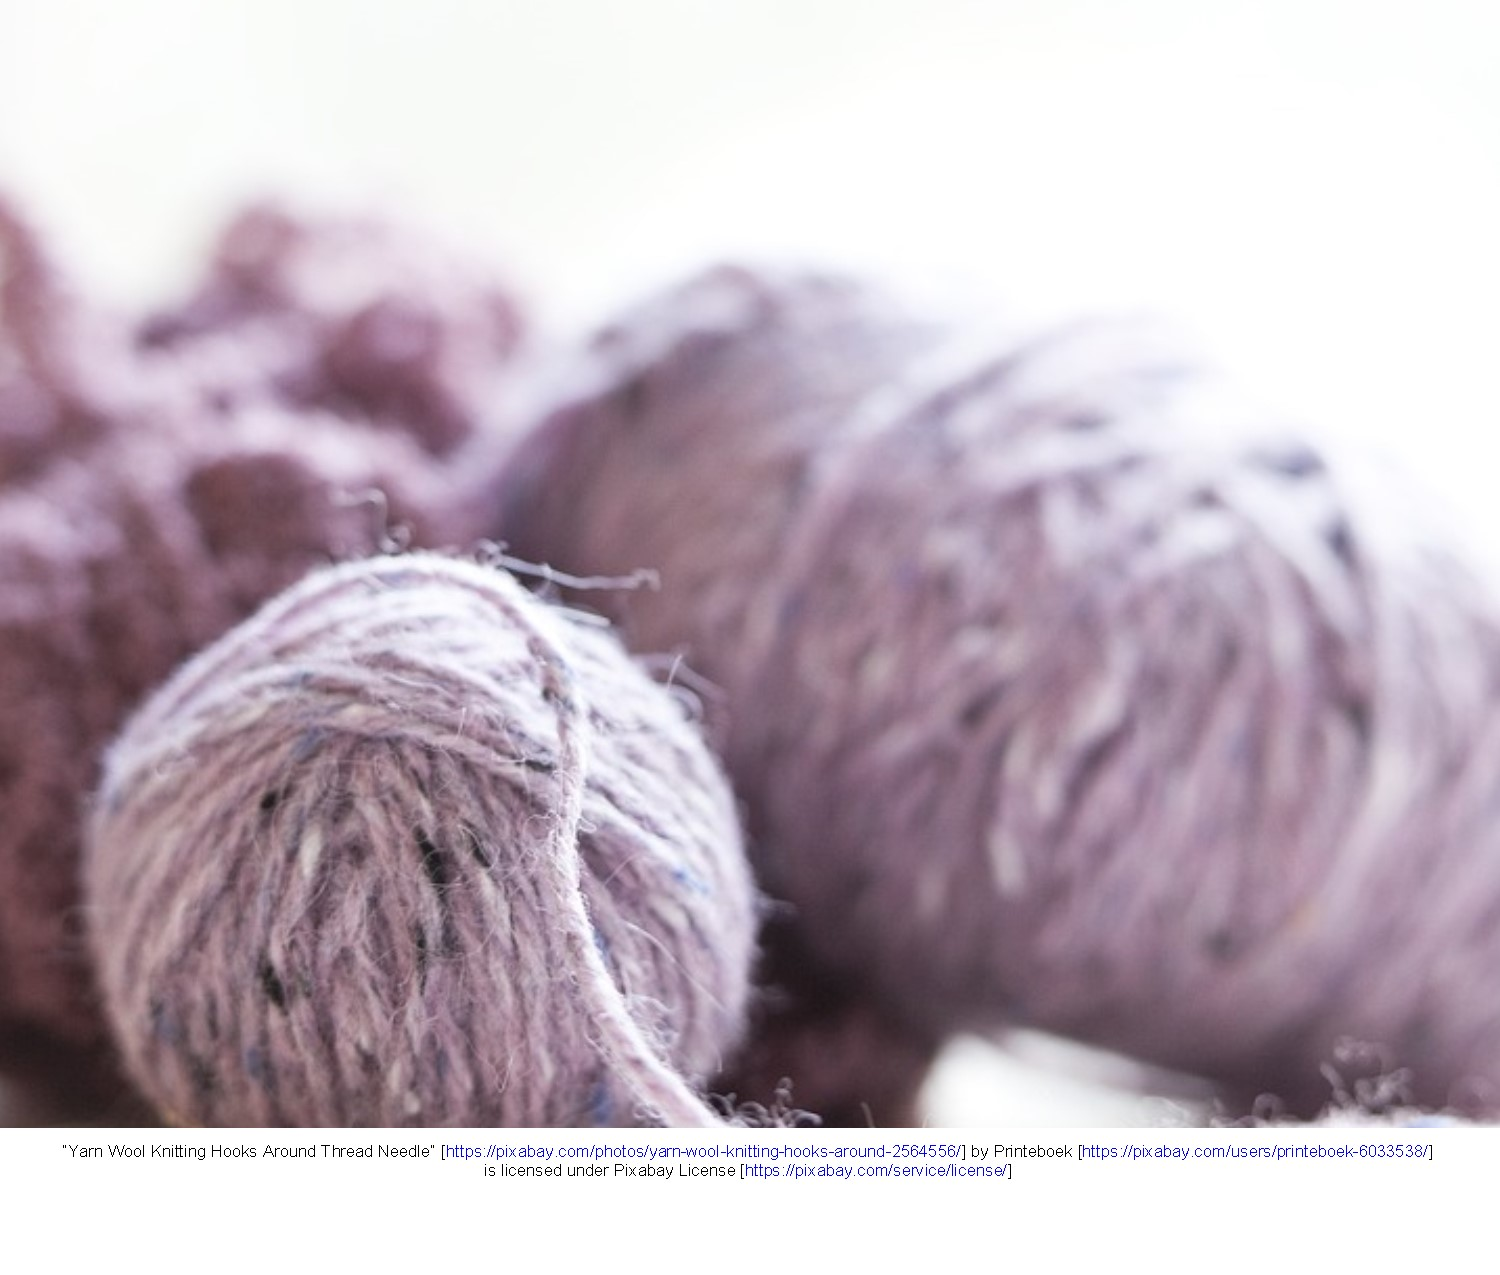 Yarn skein and ball